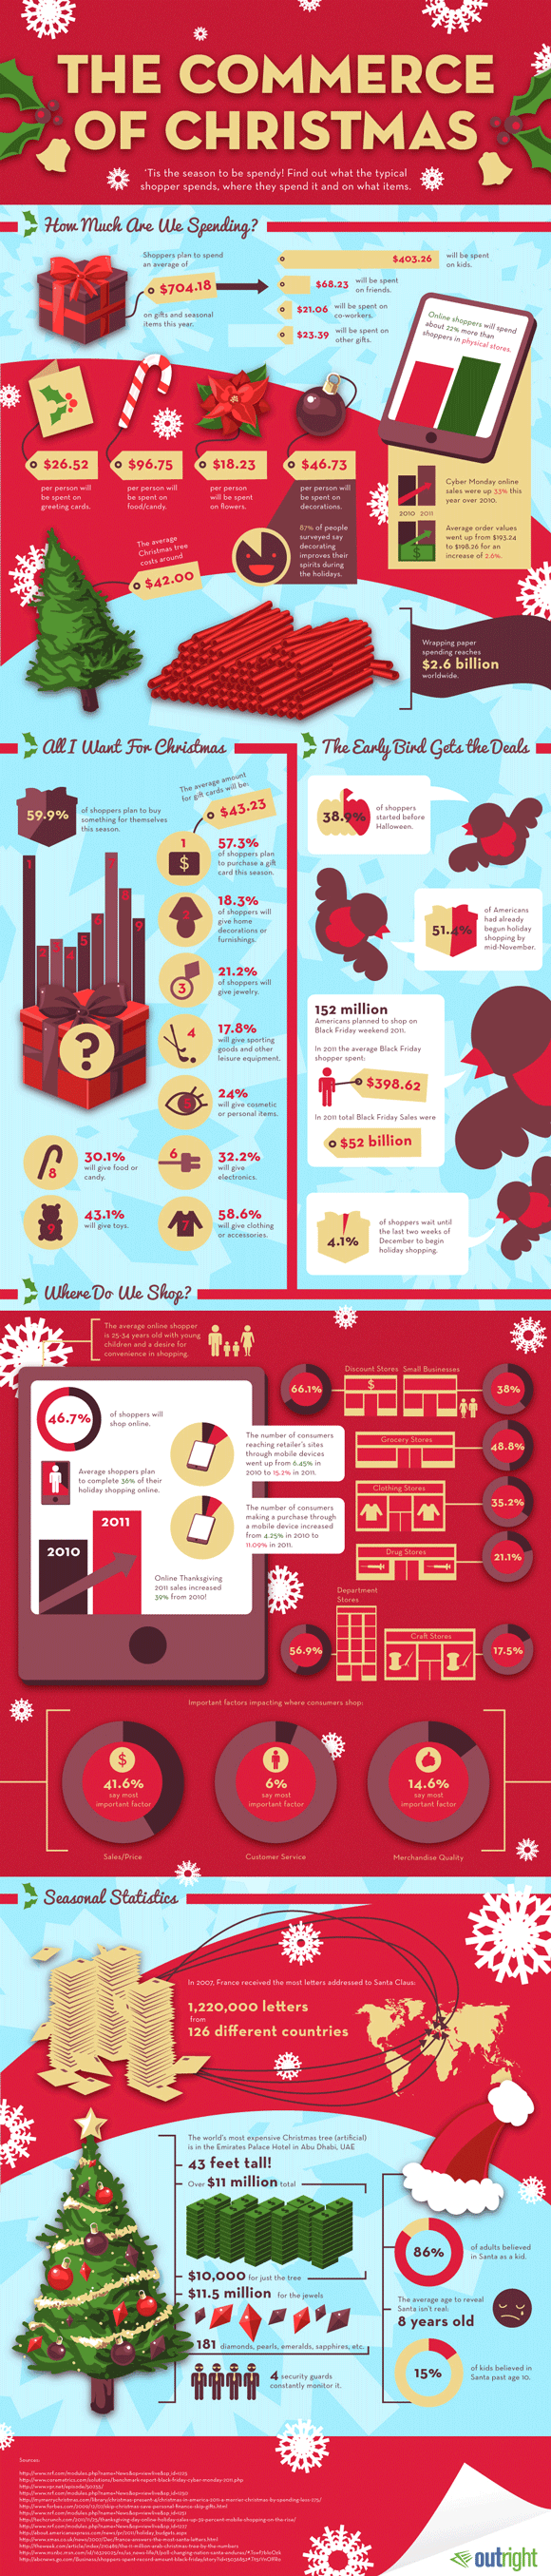 Statistics on Holiday Shopping